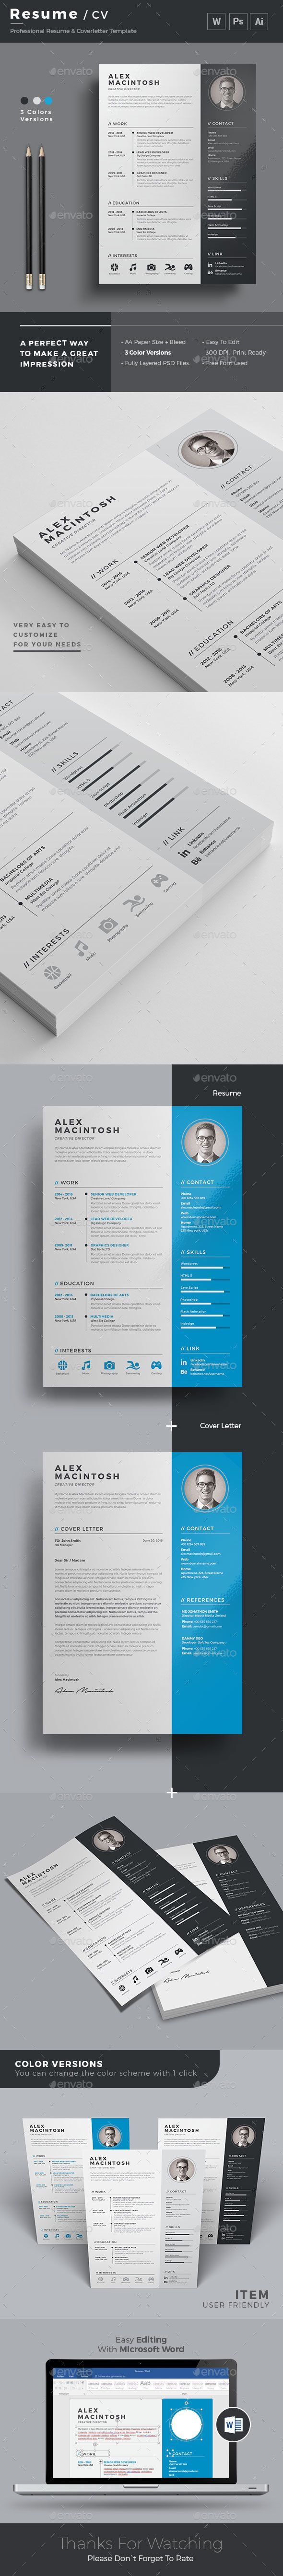 resume template psd ms word download here httpgraphicriver - Resume Template Word Free Download